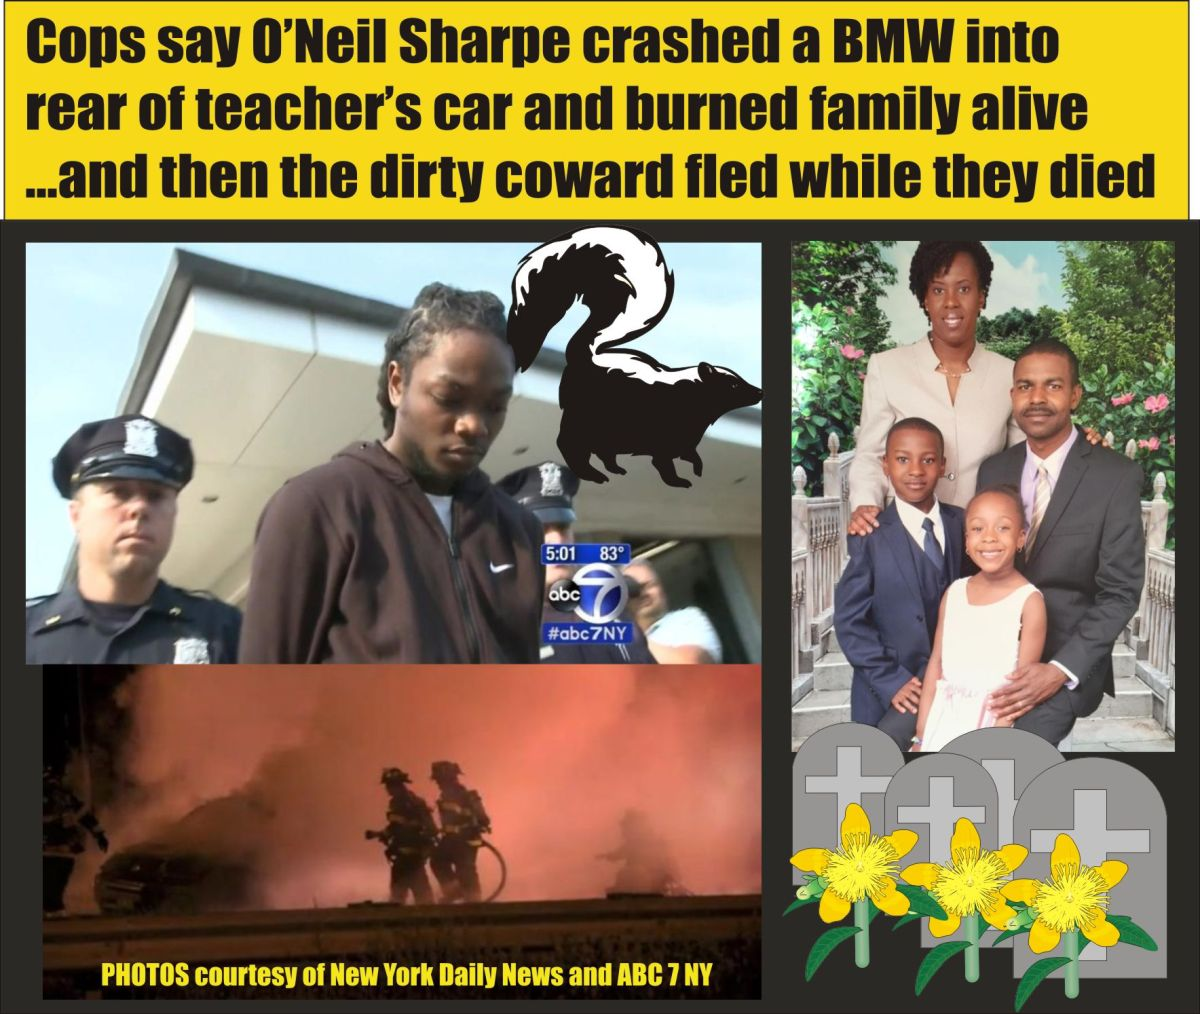 New York: family wiped out by DWI driver O'Neil Sharpe in BMW; dad and two kids burned alive while mom struggled to save them